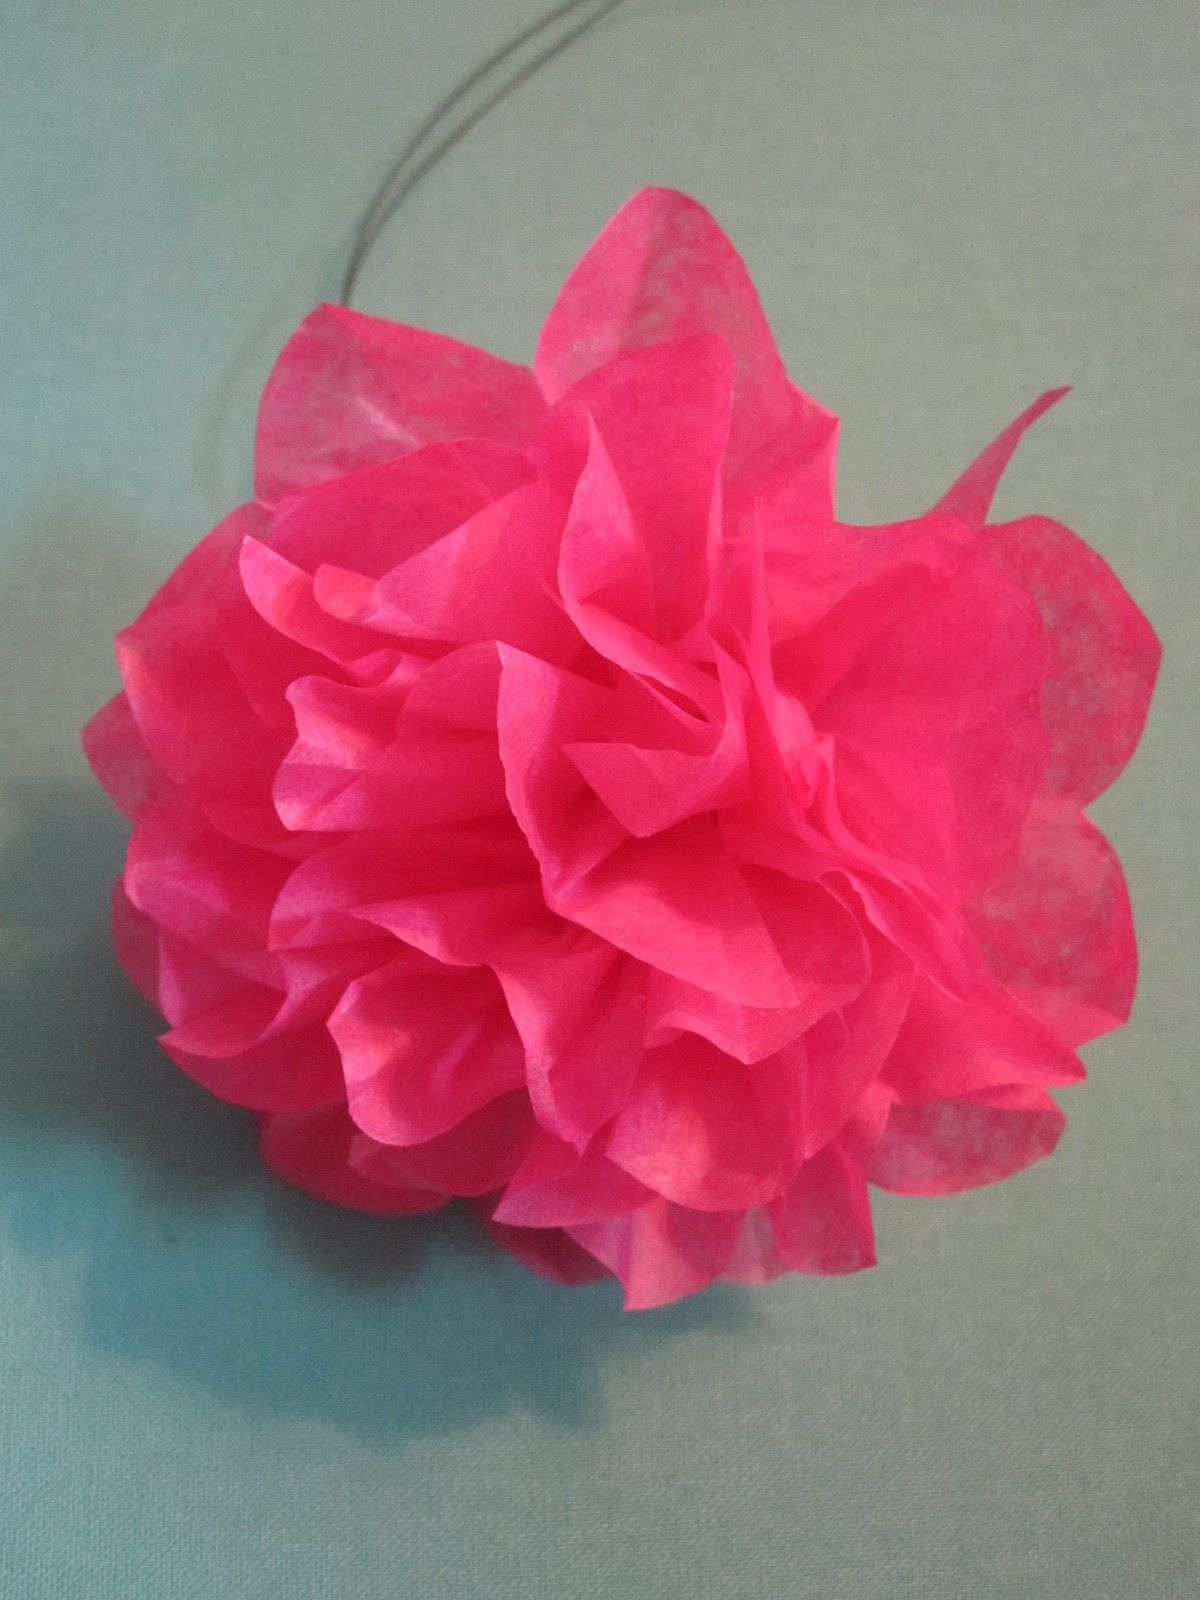 Tissue paper flowers directions of paper by carefully pulling tissue paper flowers directions of paper by carefully pulling it in towards mightylinksfo Choice Image